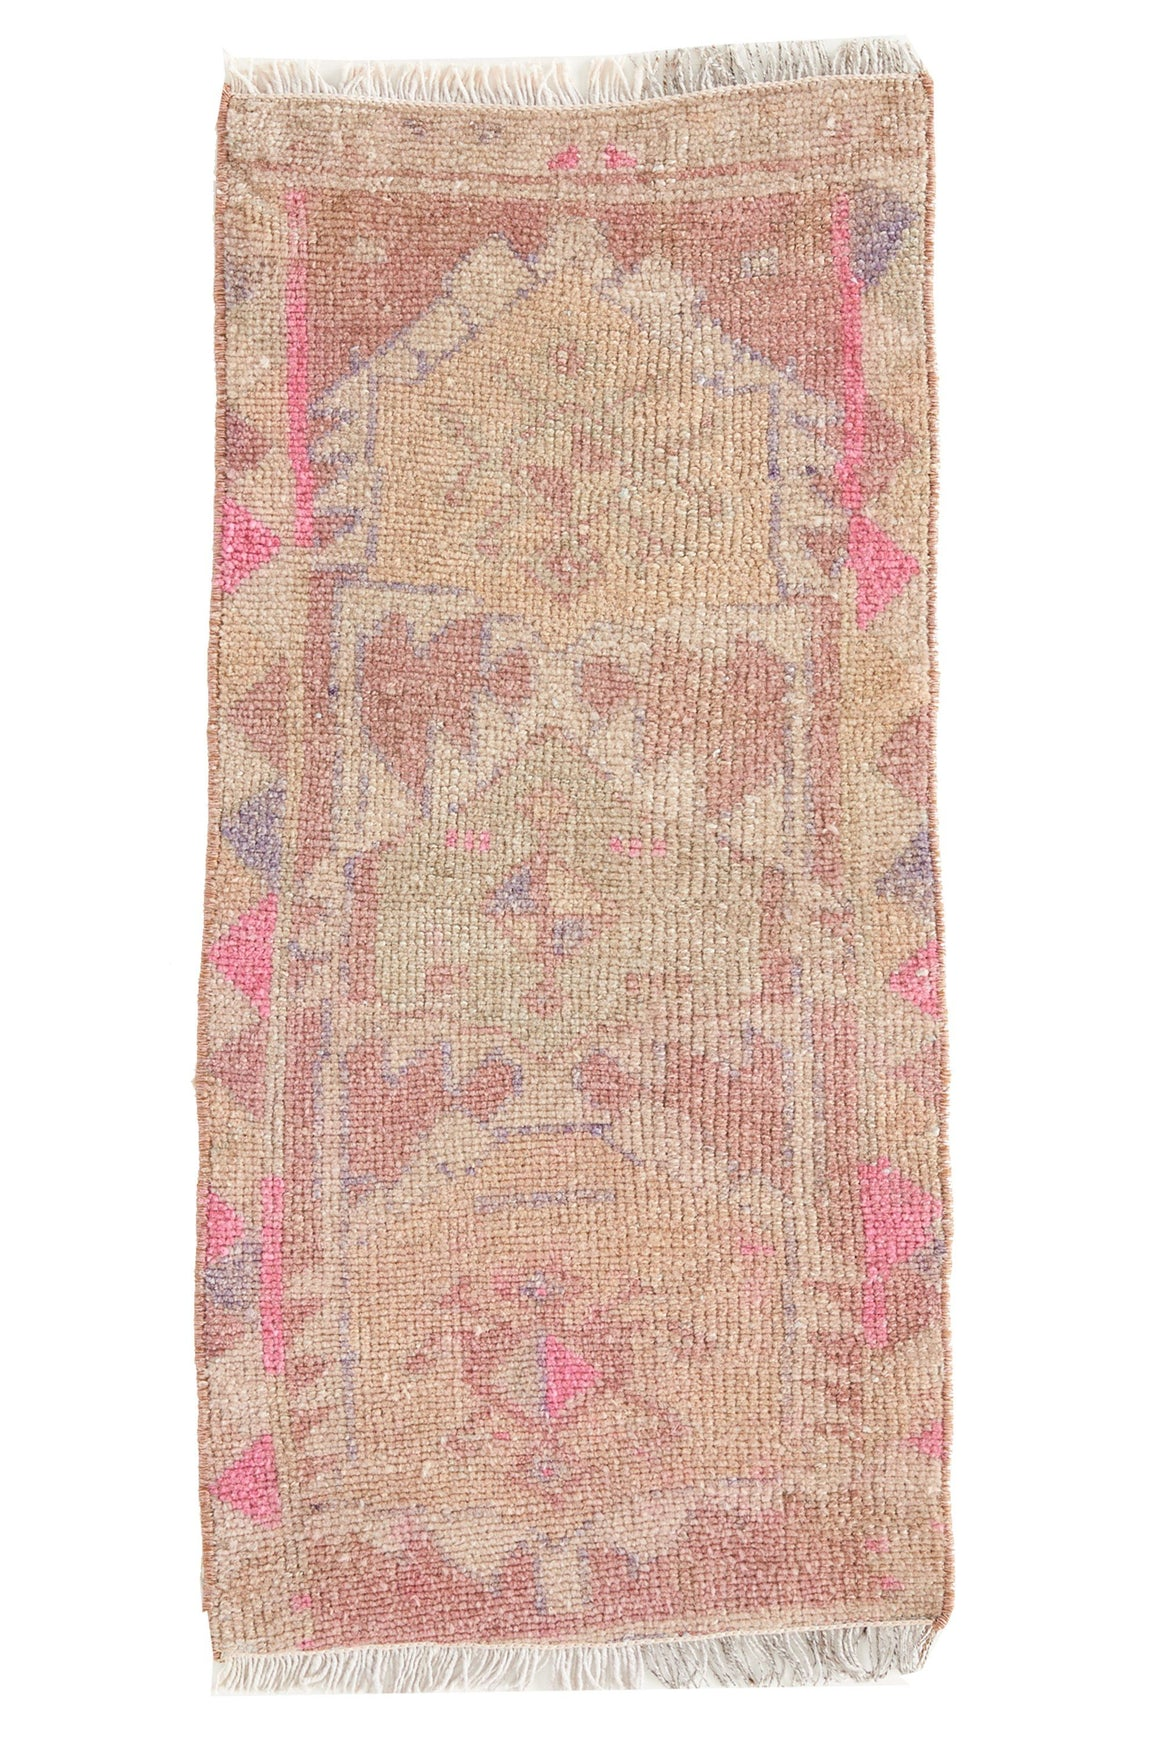 No. 513 Vintage Mini Rug - 1'4'' x 2'11'' - Canary Lane - Curated Textiles